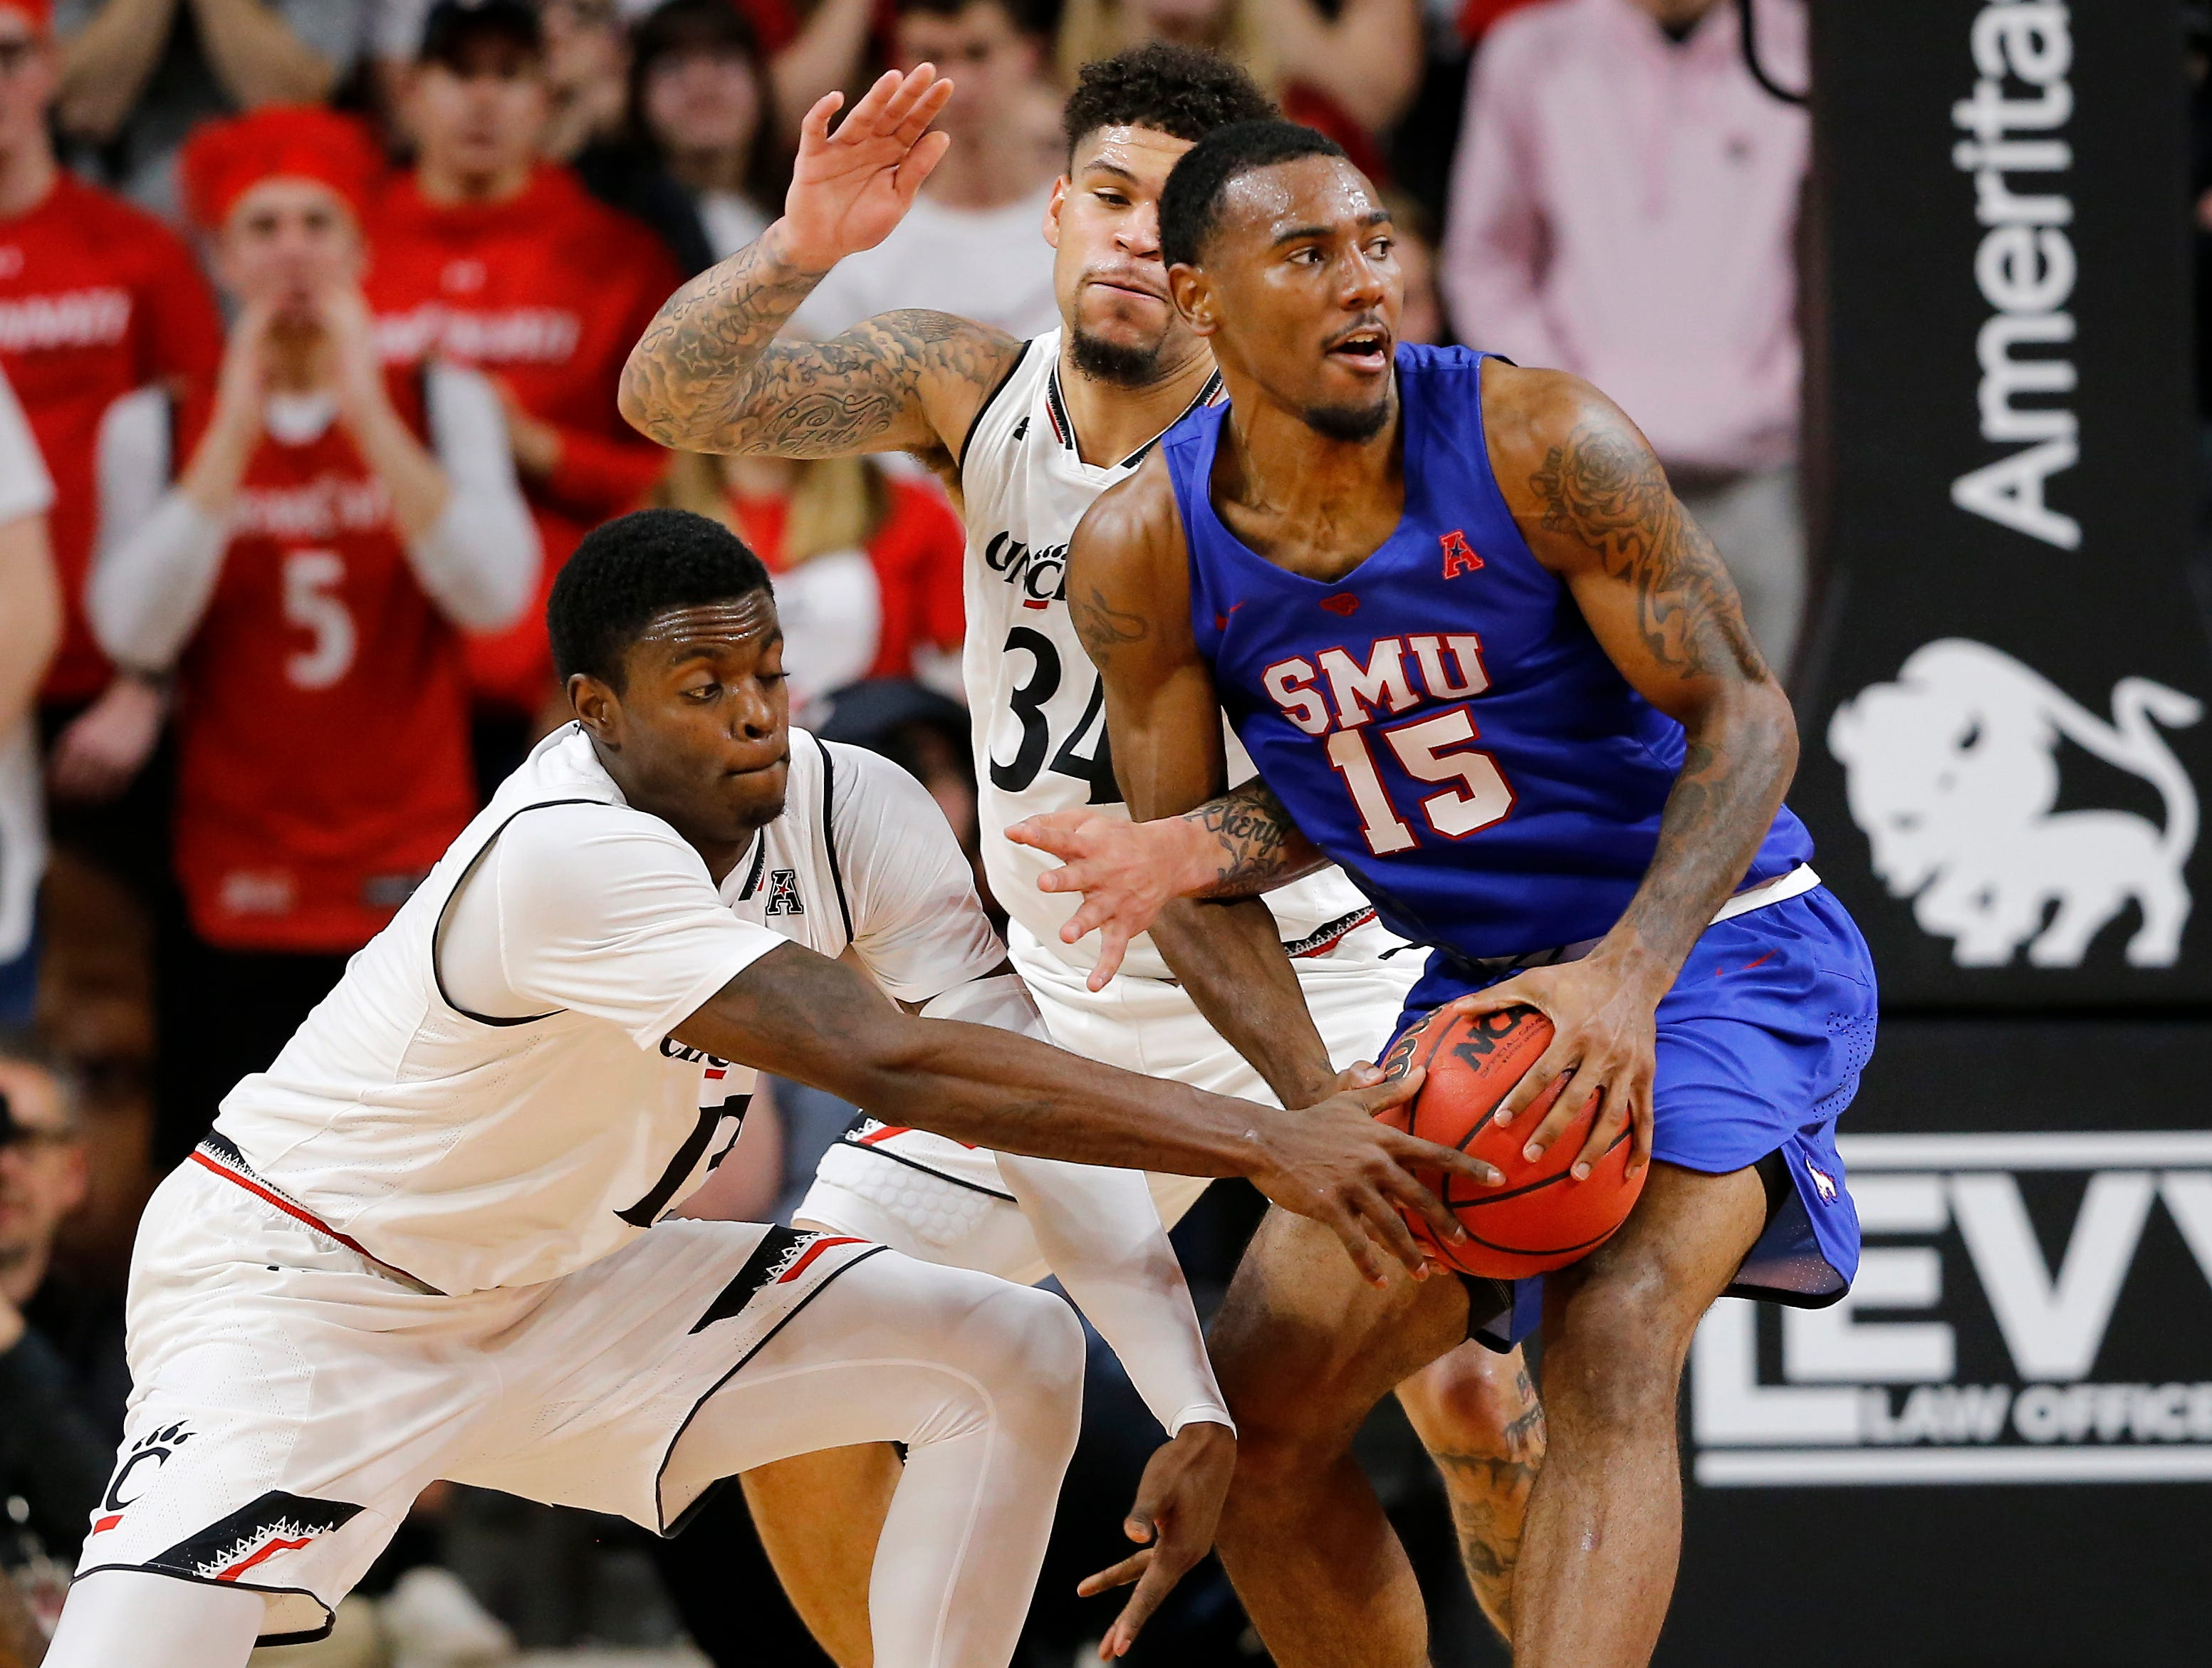 Cincinnati Bearcats forward Tre Scott (13) reaches in as Southern Methodist Mustangs forward Isiaha Mike (15) tries to pass in the first half the the NCAA American Athletic Conference basketball game between the Cincinnati Bearcats and the Southern Methodist Mustangs at Fifth Third Arena in Cincinnati on Saturday, Feb. 2, 2019.